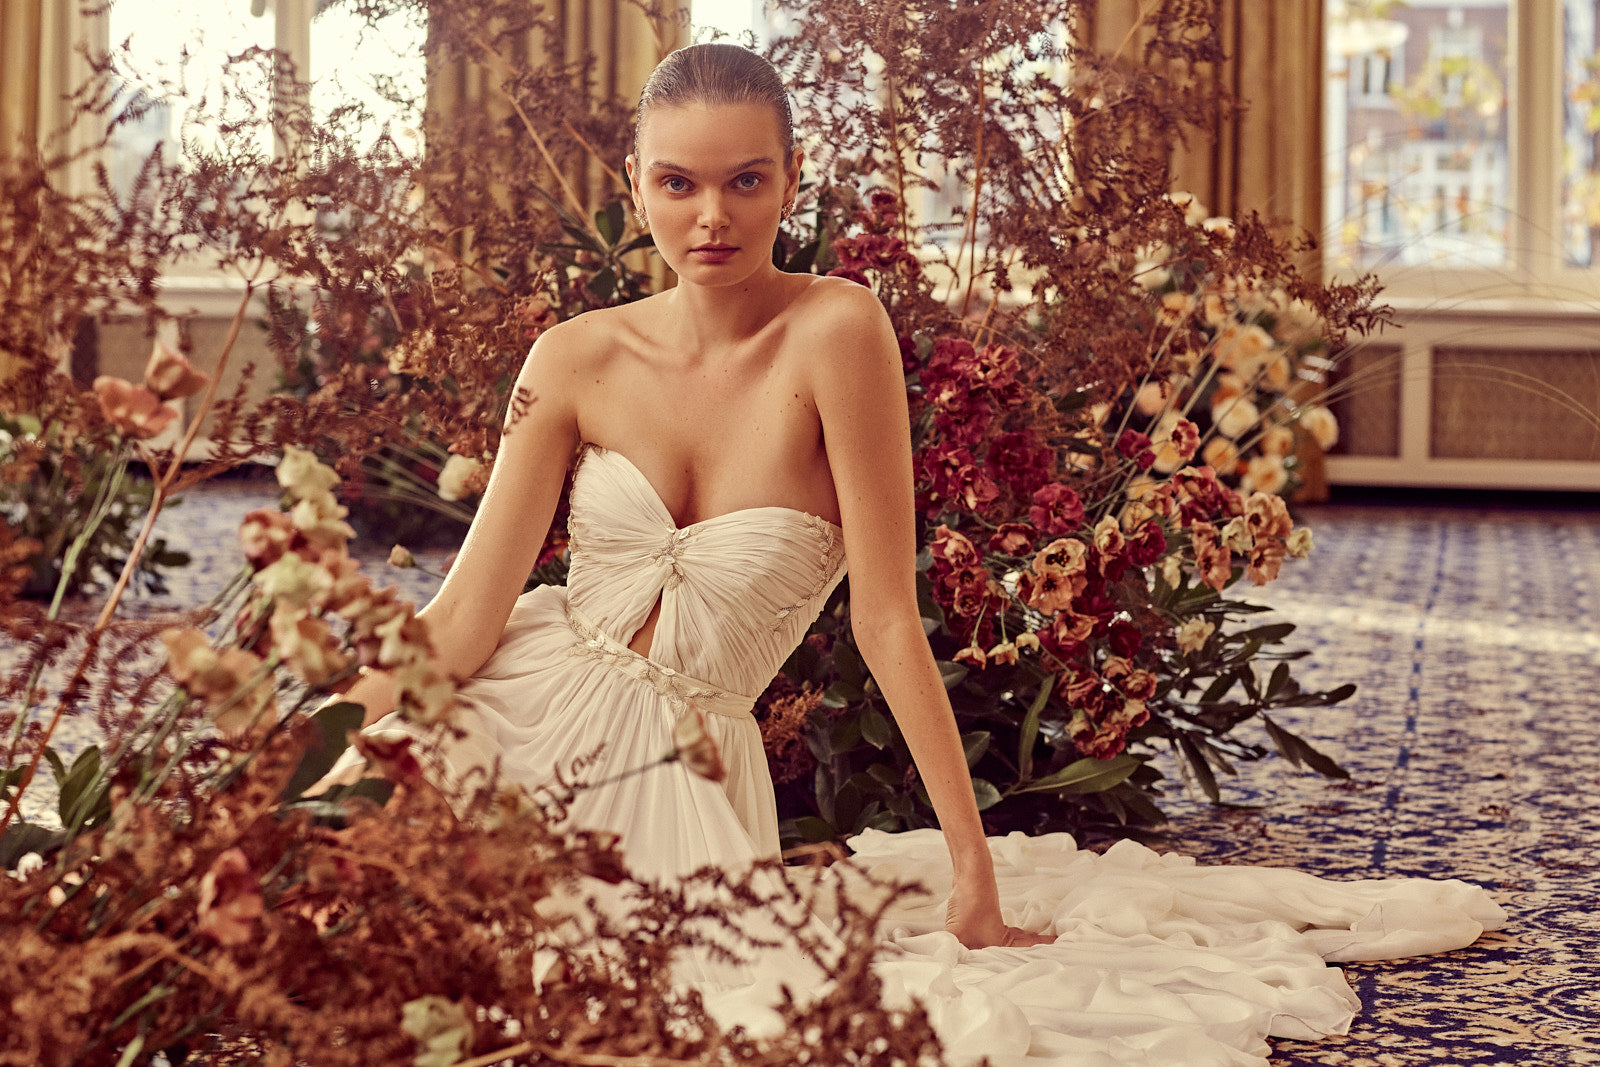 Karin Rom Bridal Co creating your bespoke wedding gown